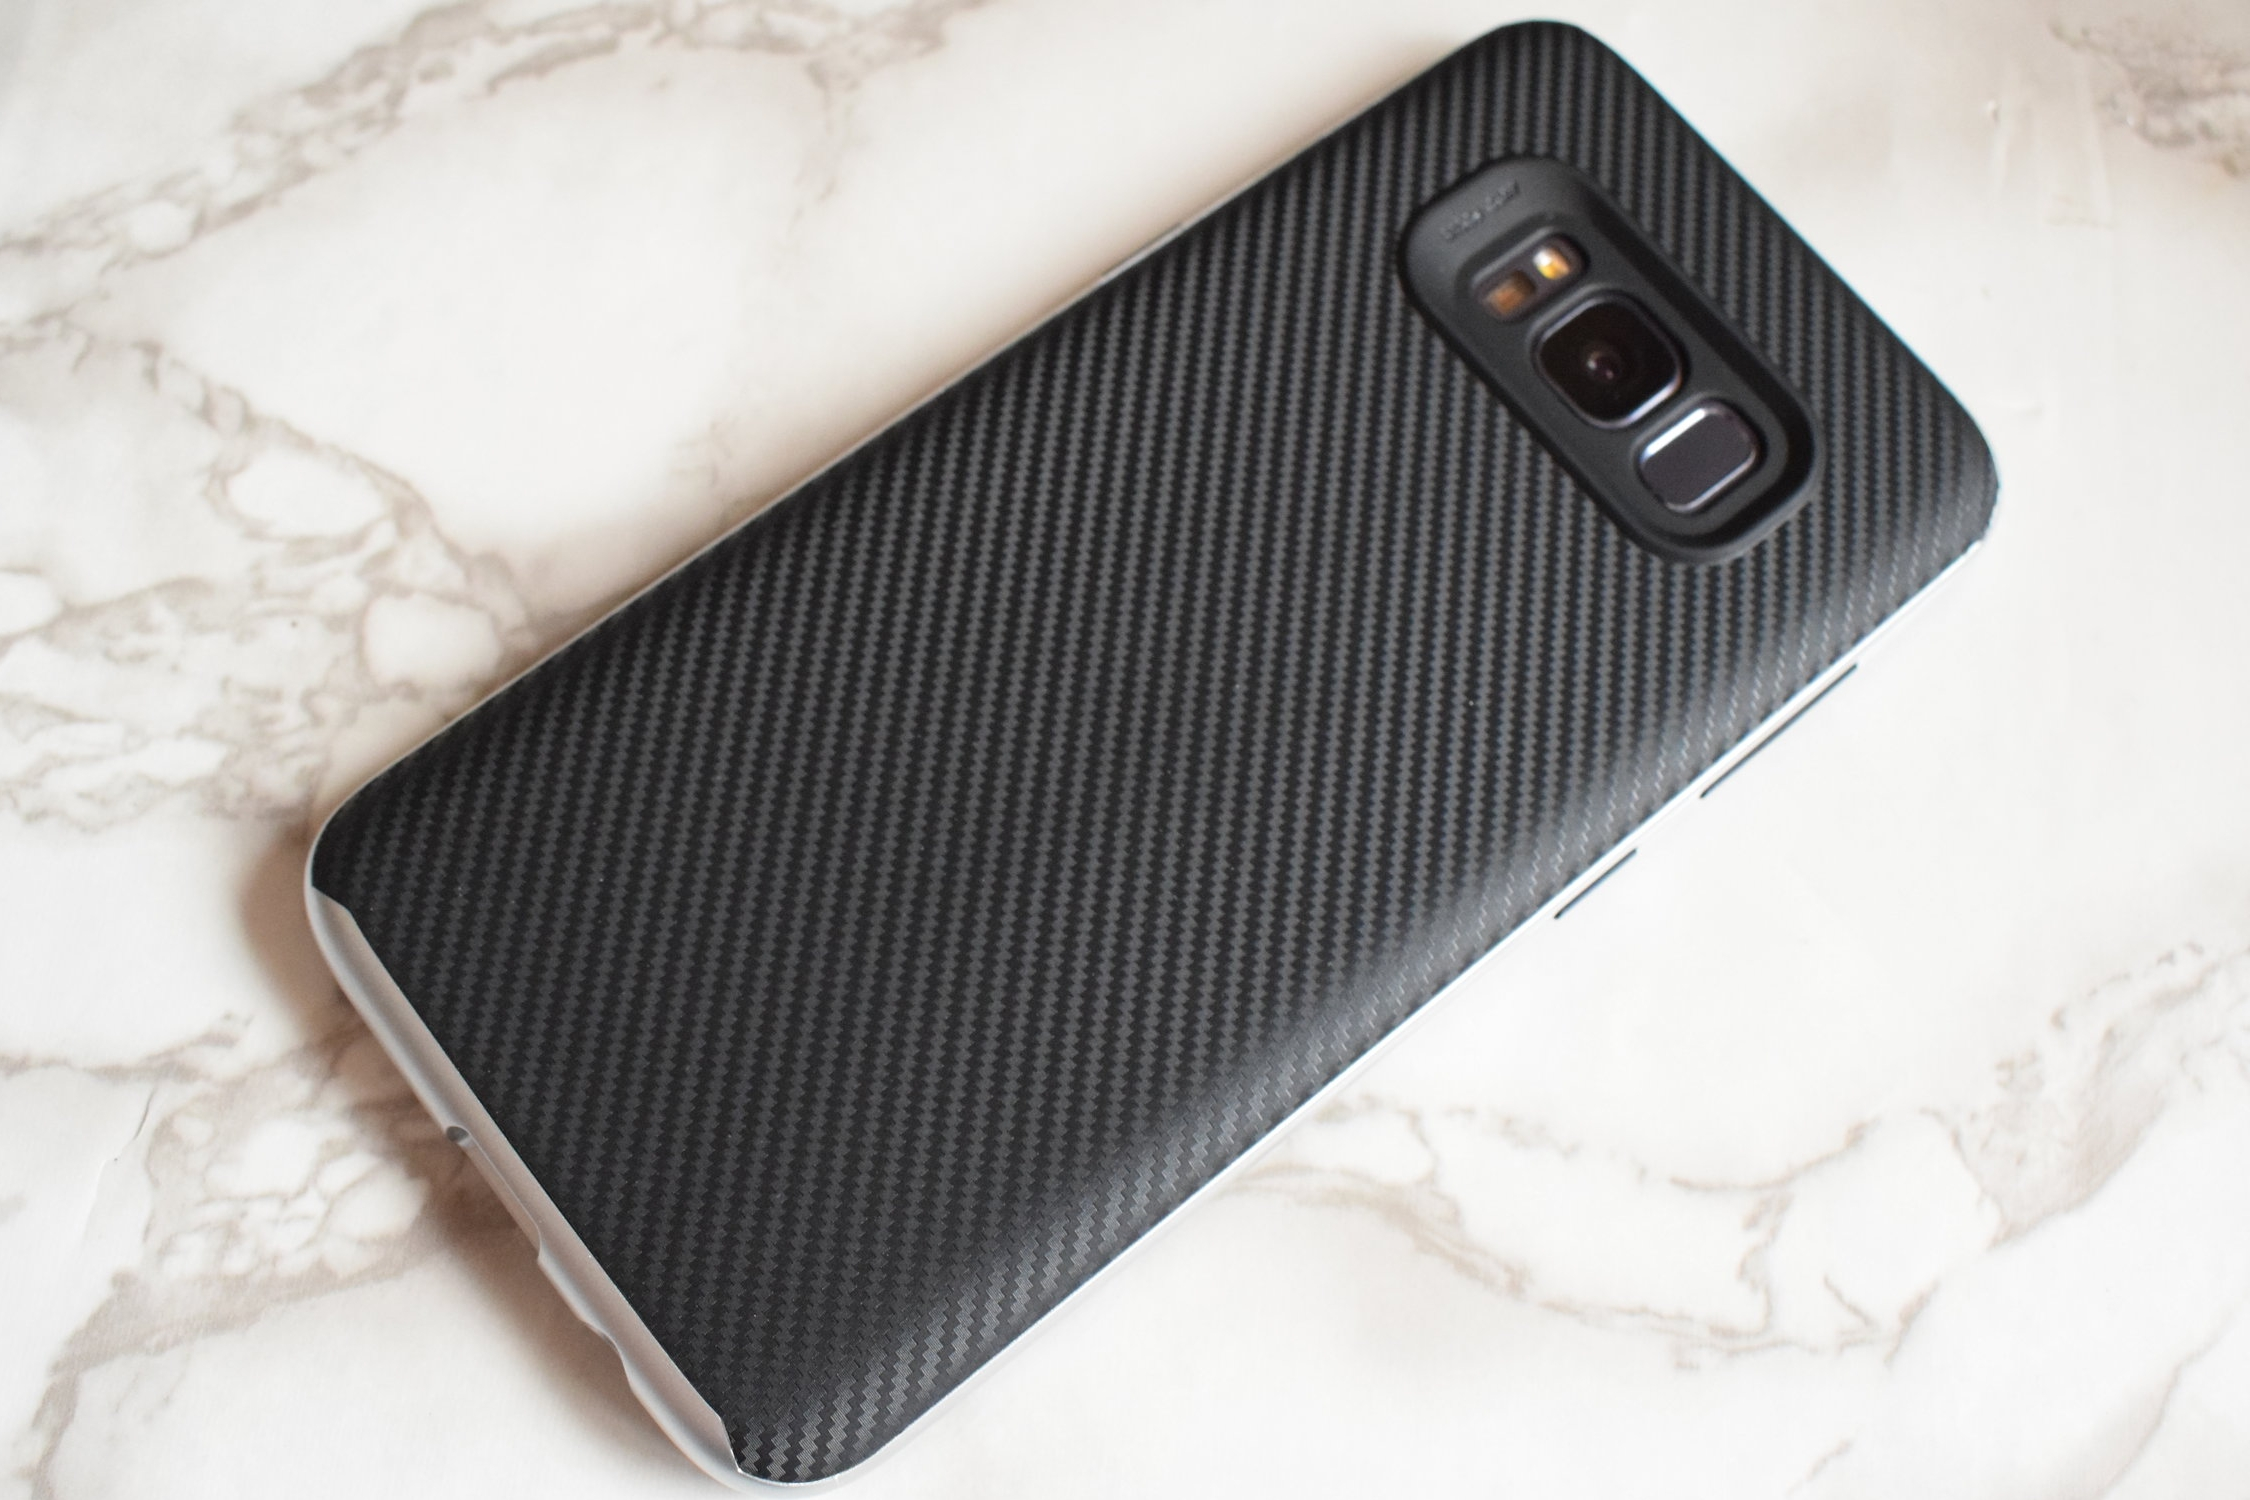 Olixar Samsung Galaxy S8 mobile phone case from Mobile Phone